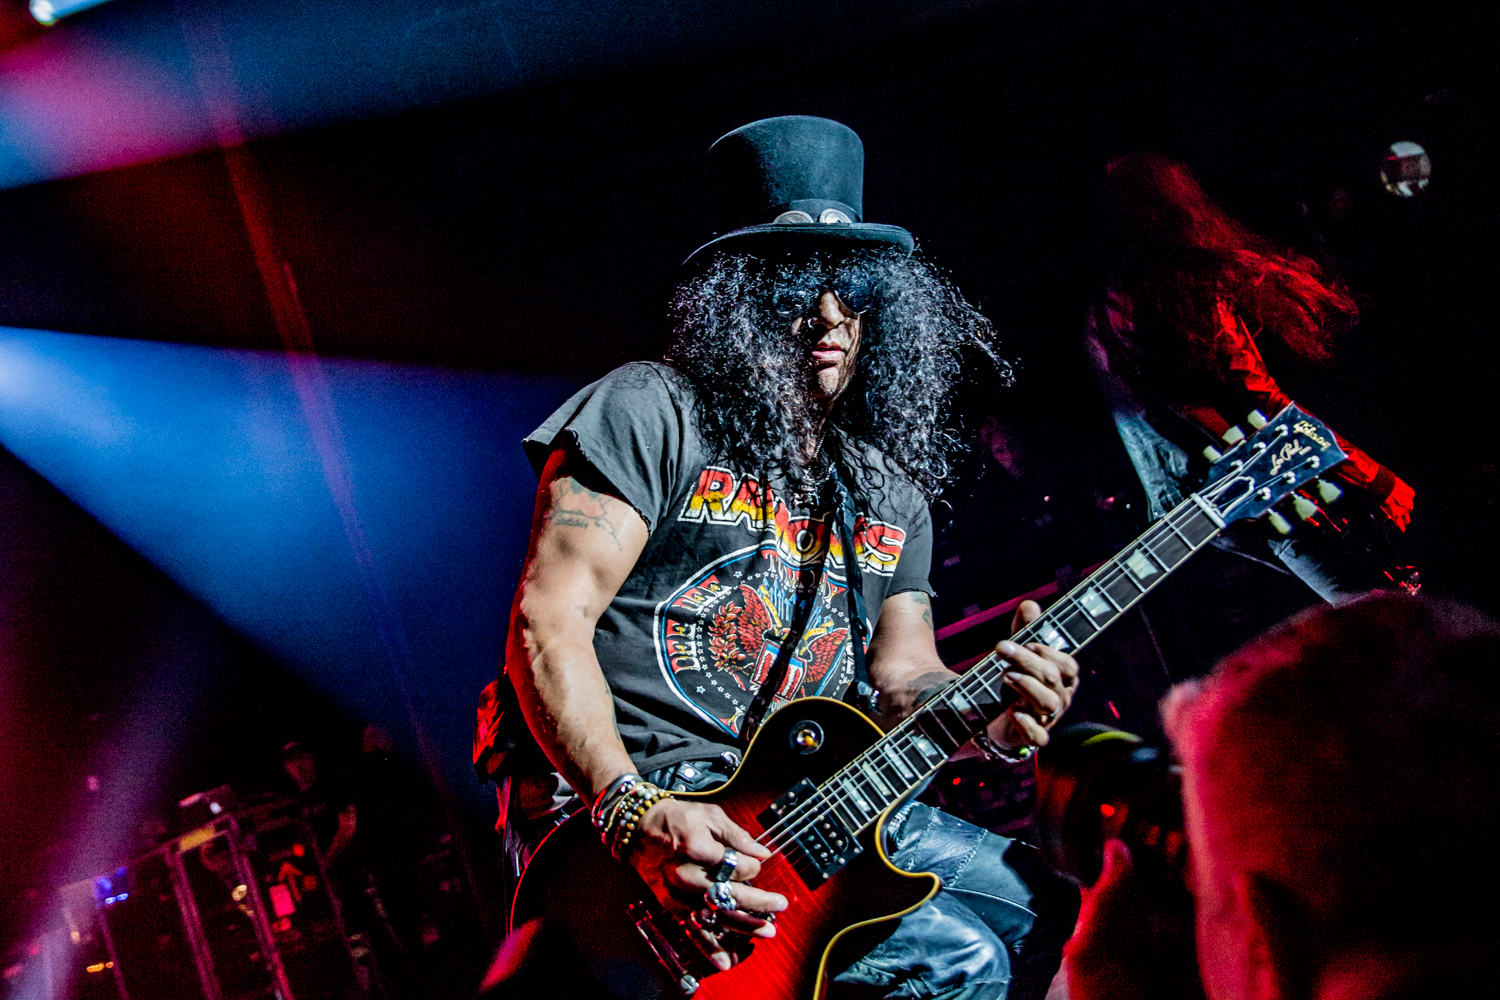 20190223_Slash ft. Myles Kennedy and The Conspirators_Koninklijk Circus-5